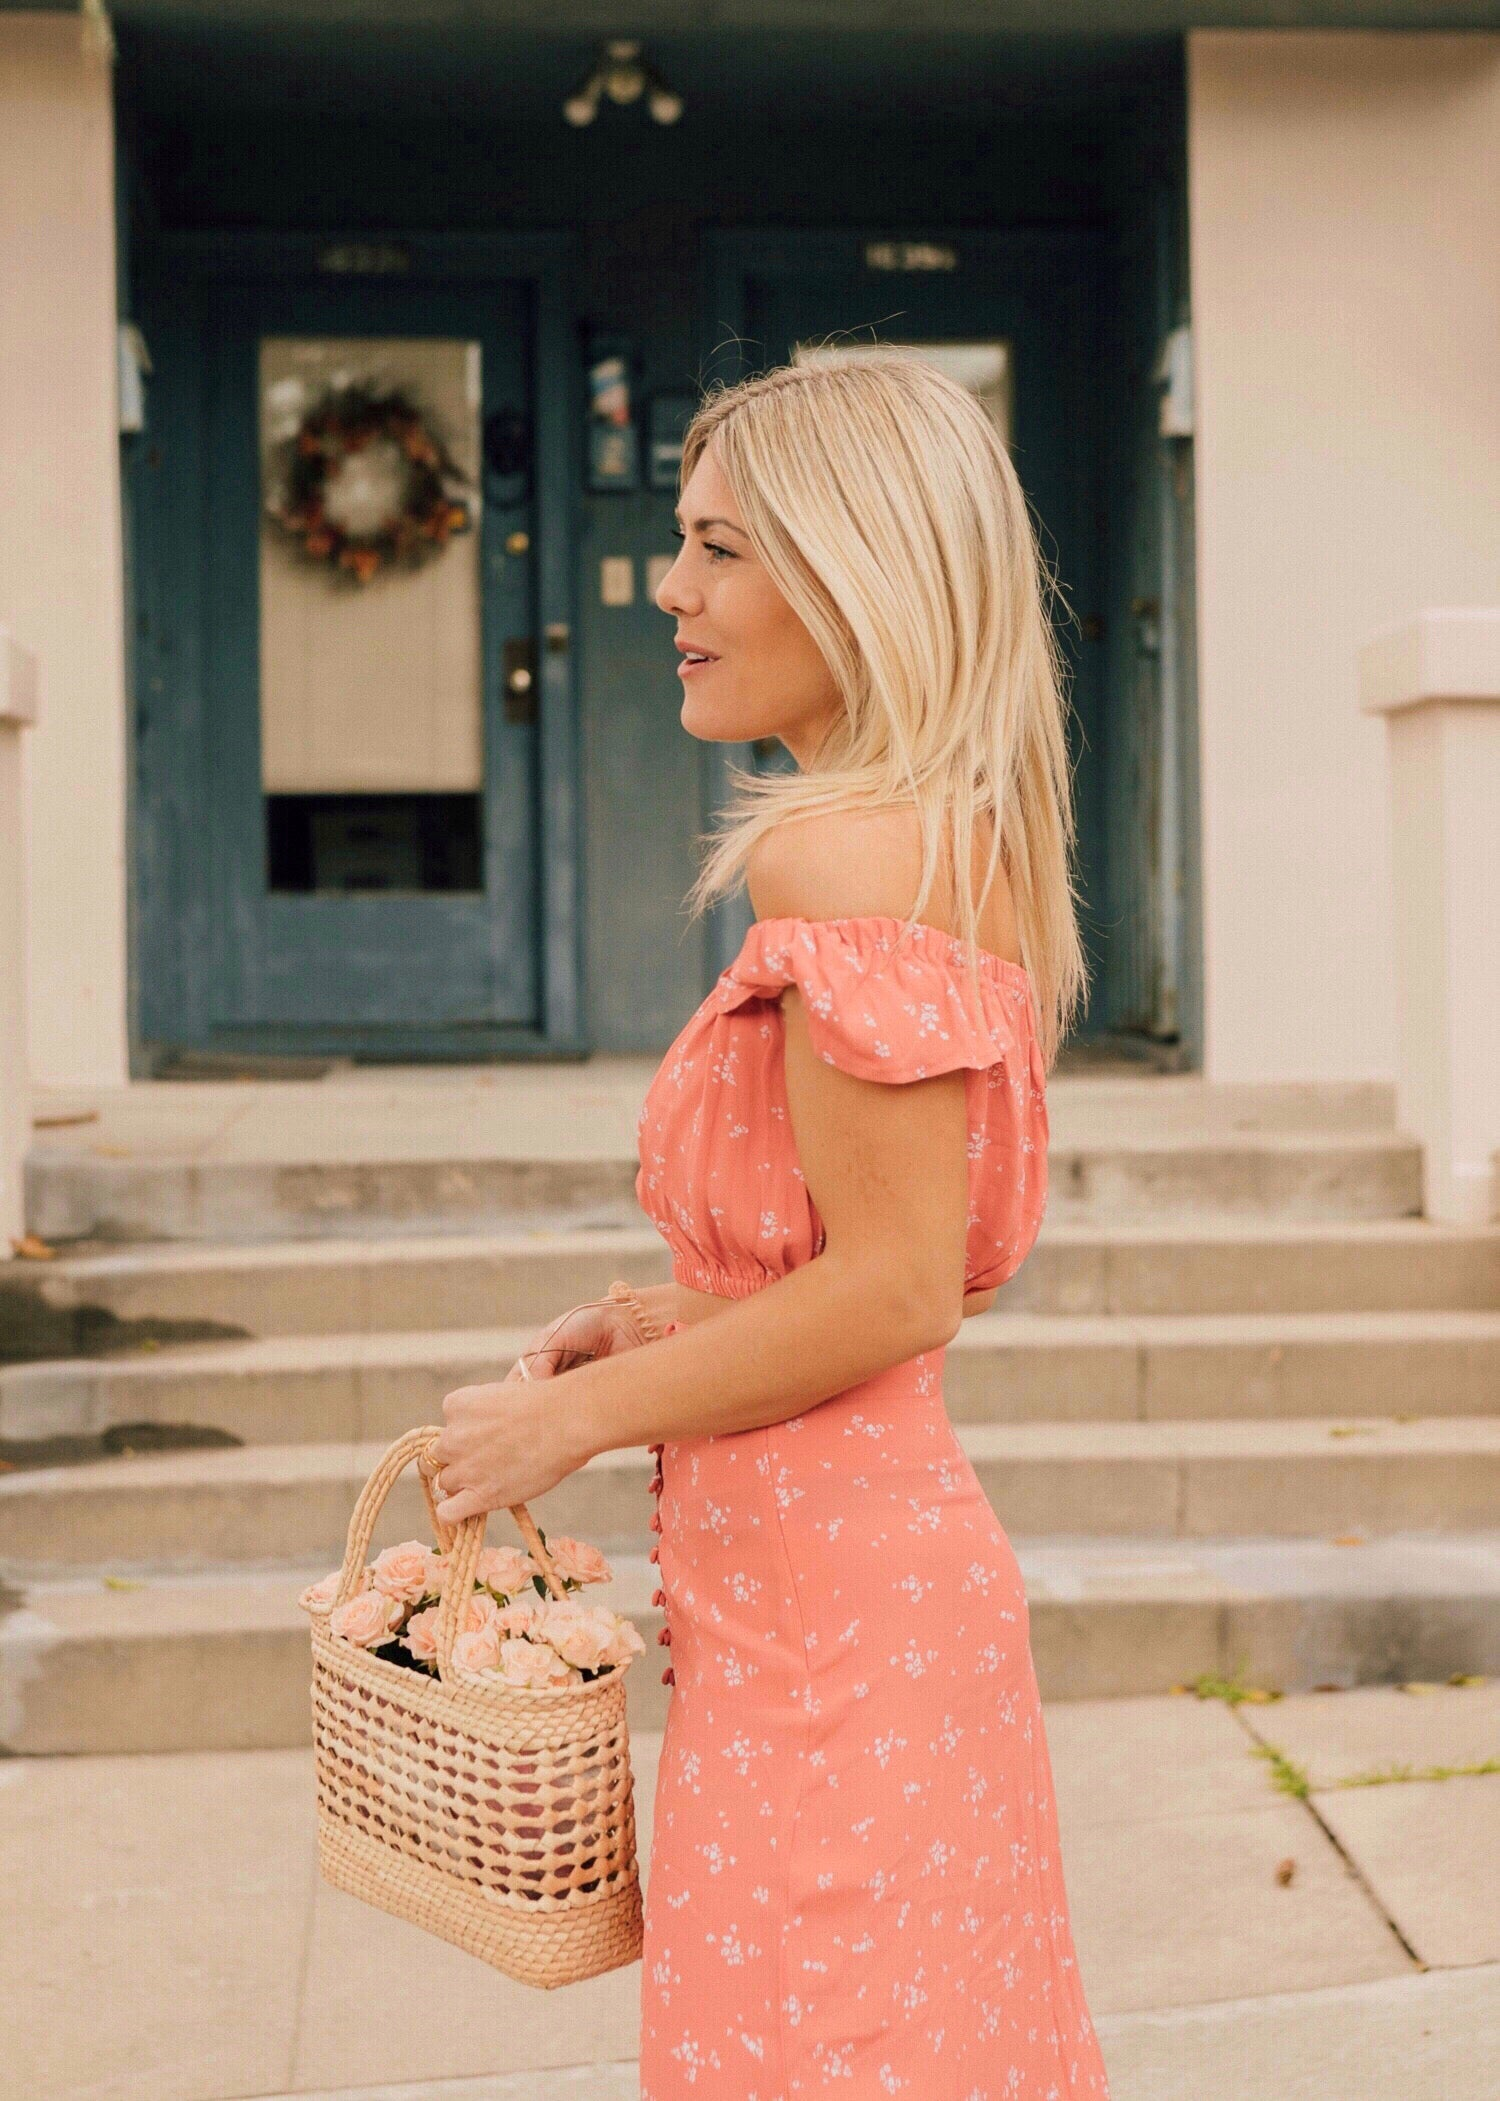 Katie Dean in two-piece floral, pink Spring outfit holding basket bag of pink flowers.